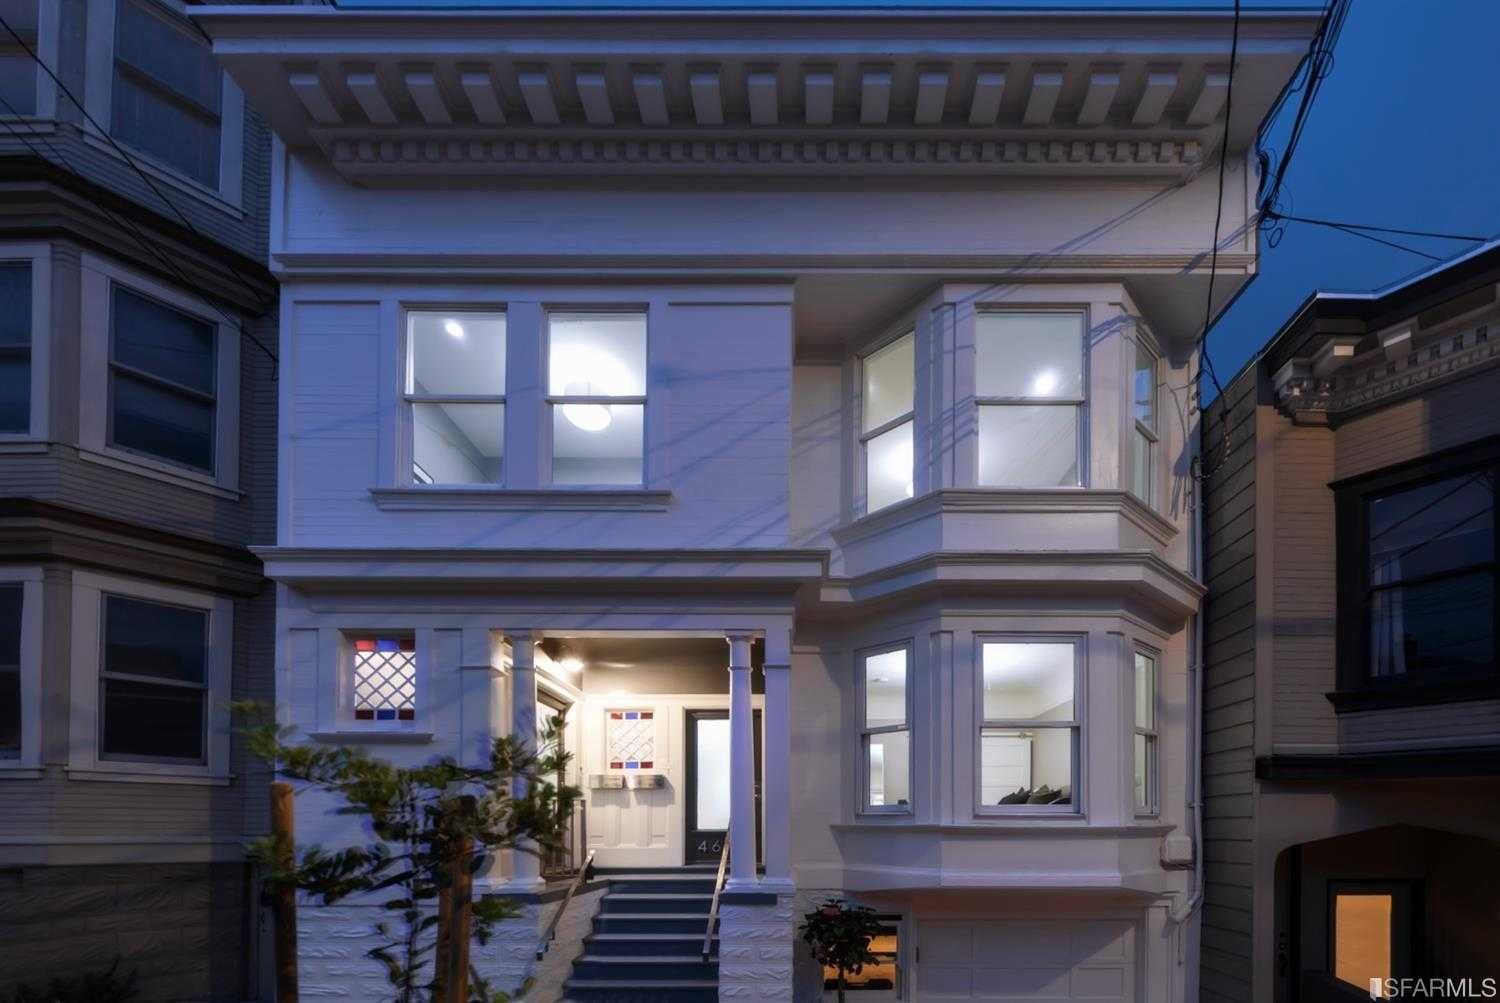 $1,398,000 - 3Br/2Ba -  for Sale in San Francisco